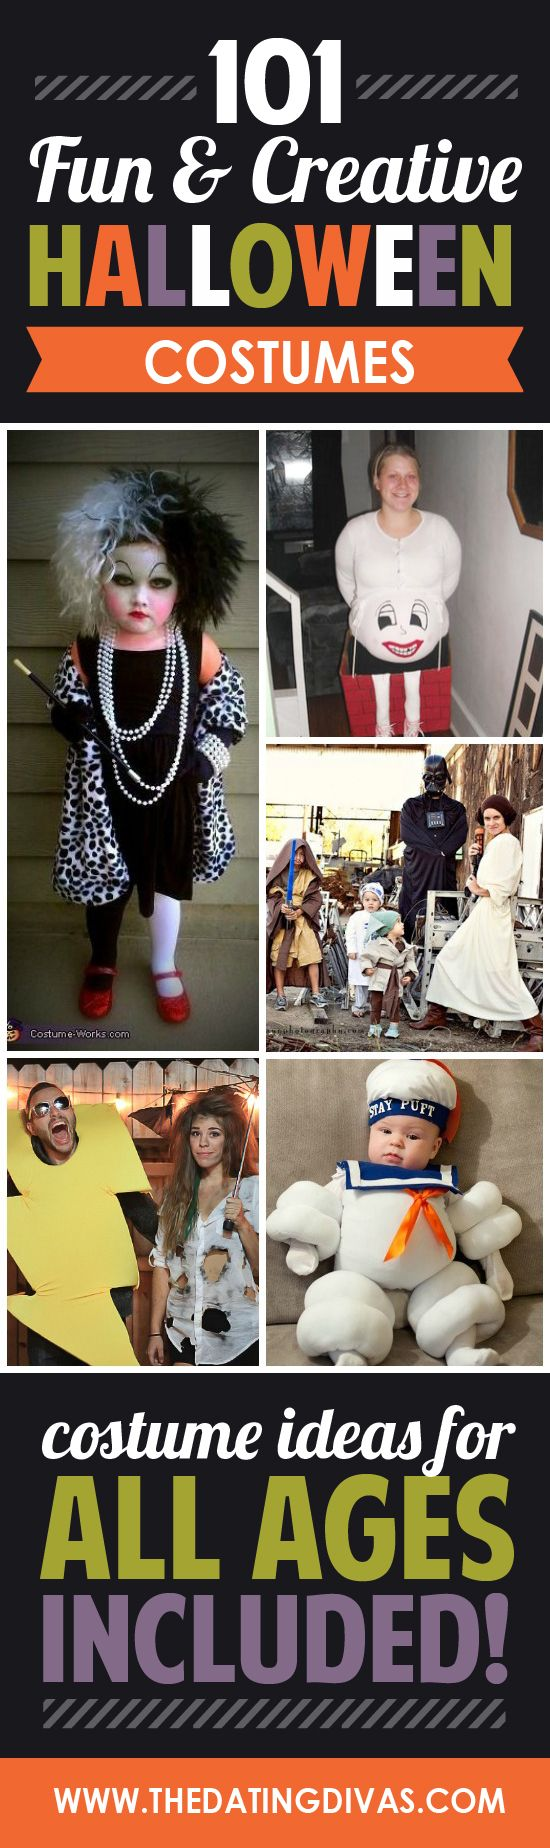 101 creative halloween costumes - List Of Halloween Costumes Ideas